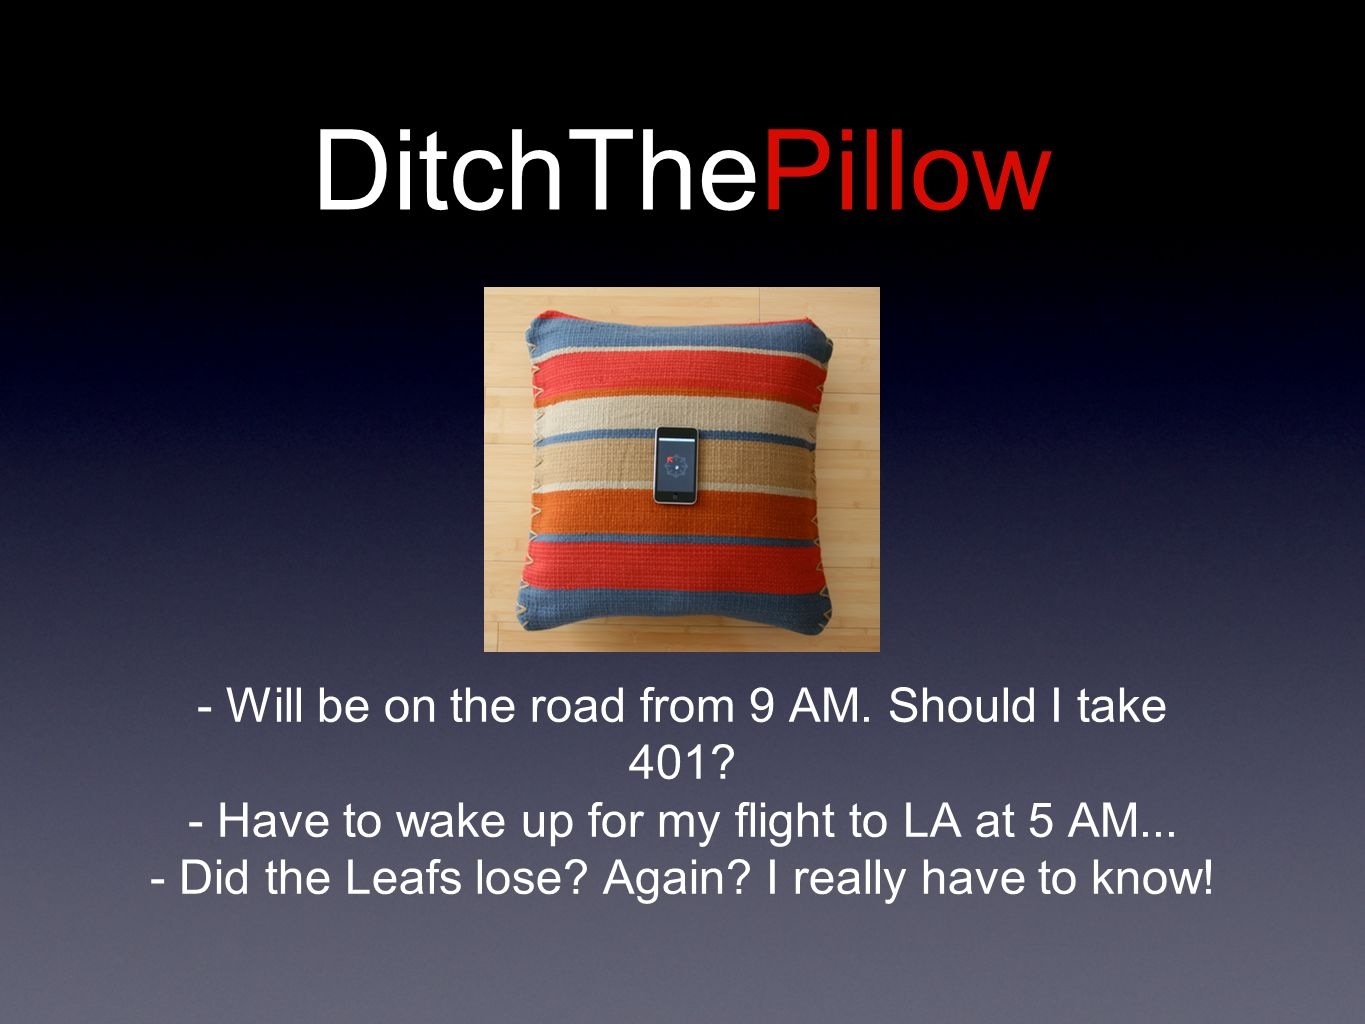 DitchThePillow - Will be on the road from 9 AM. Should I take 401.